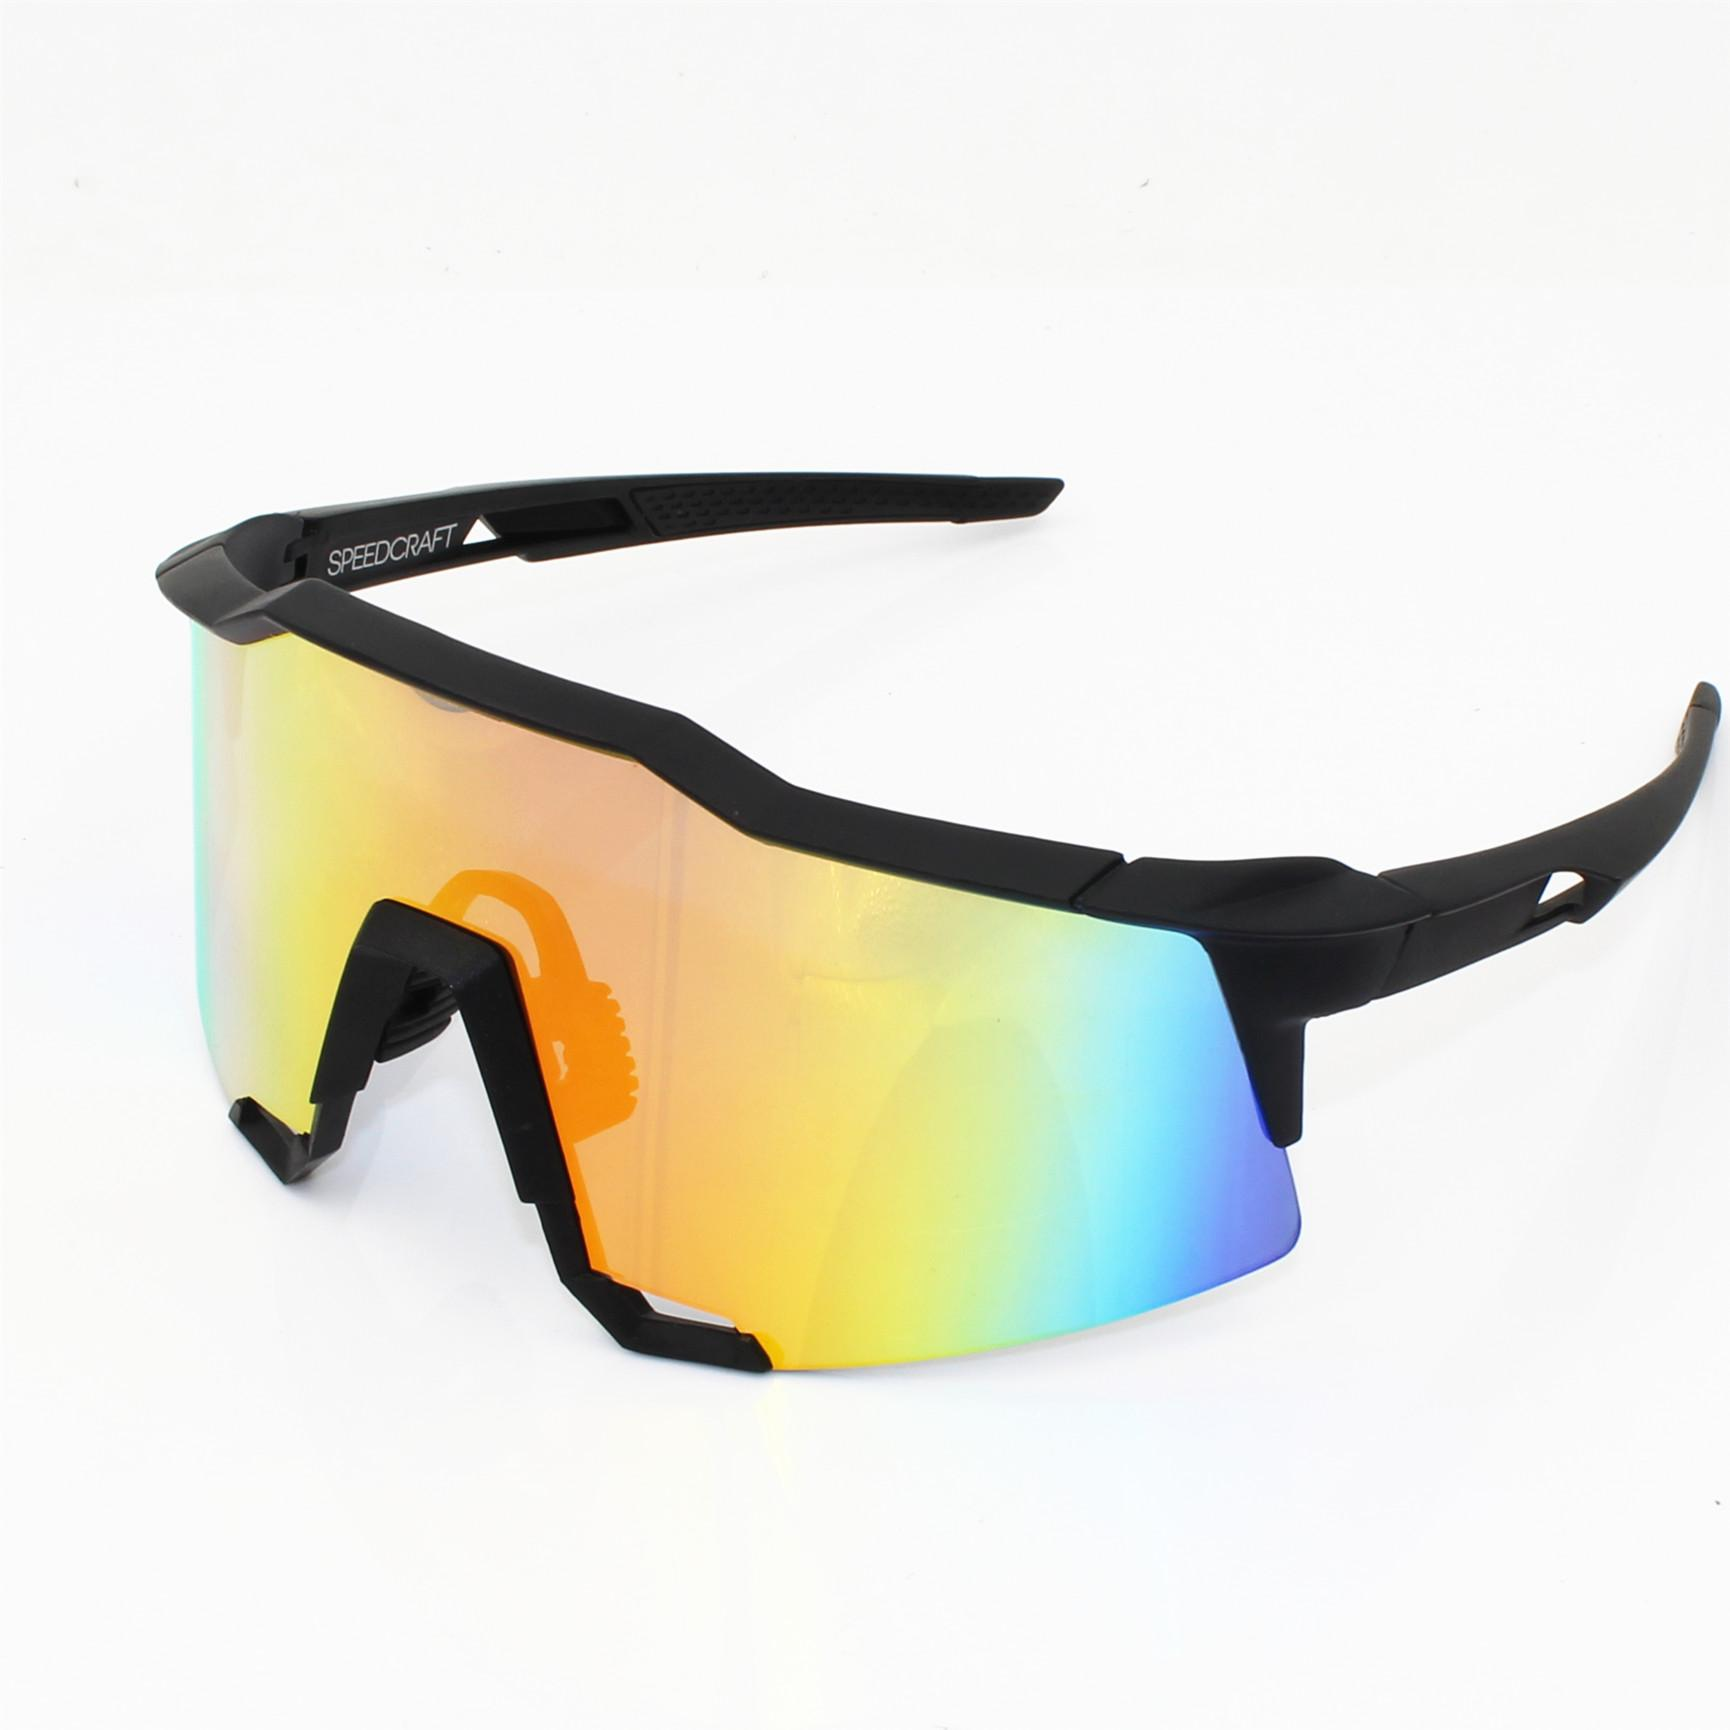 984eabe5ca Outdoor Sports Goggles Sunglasses Gafas Ciclismo UV400 Cycling ...